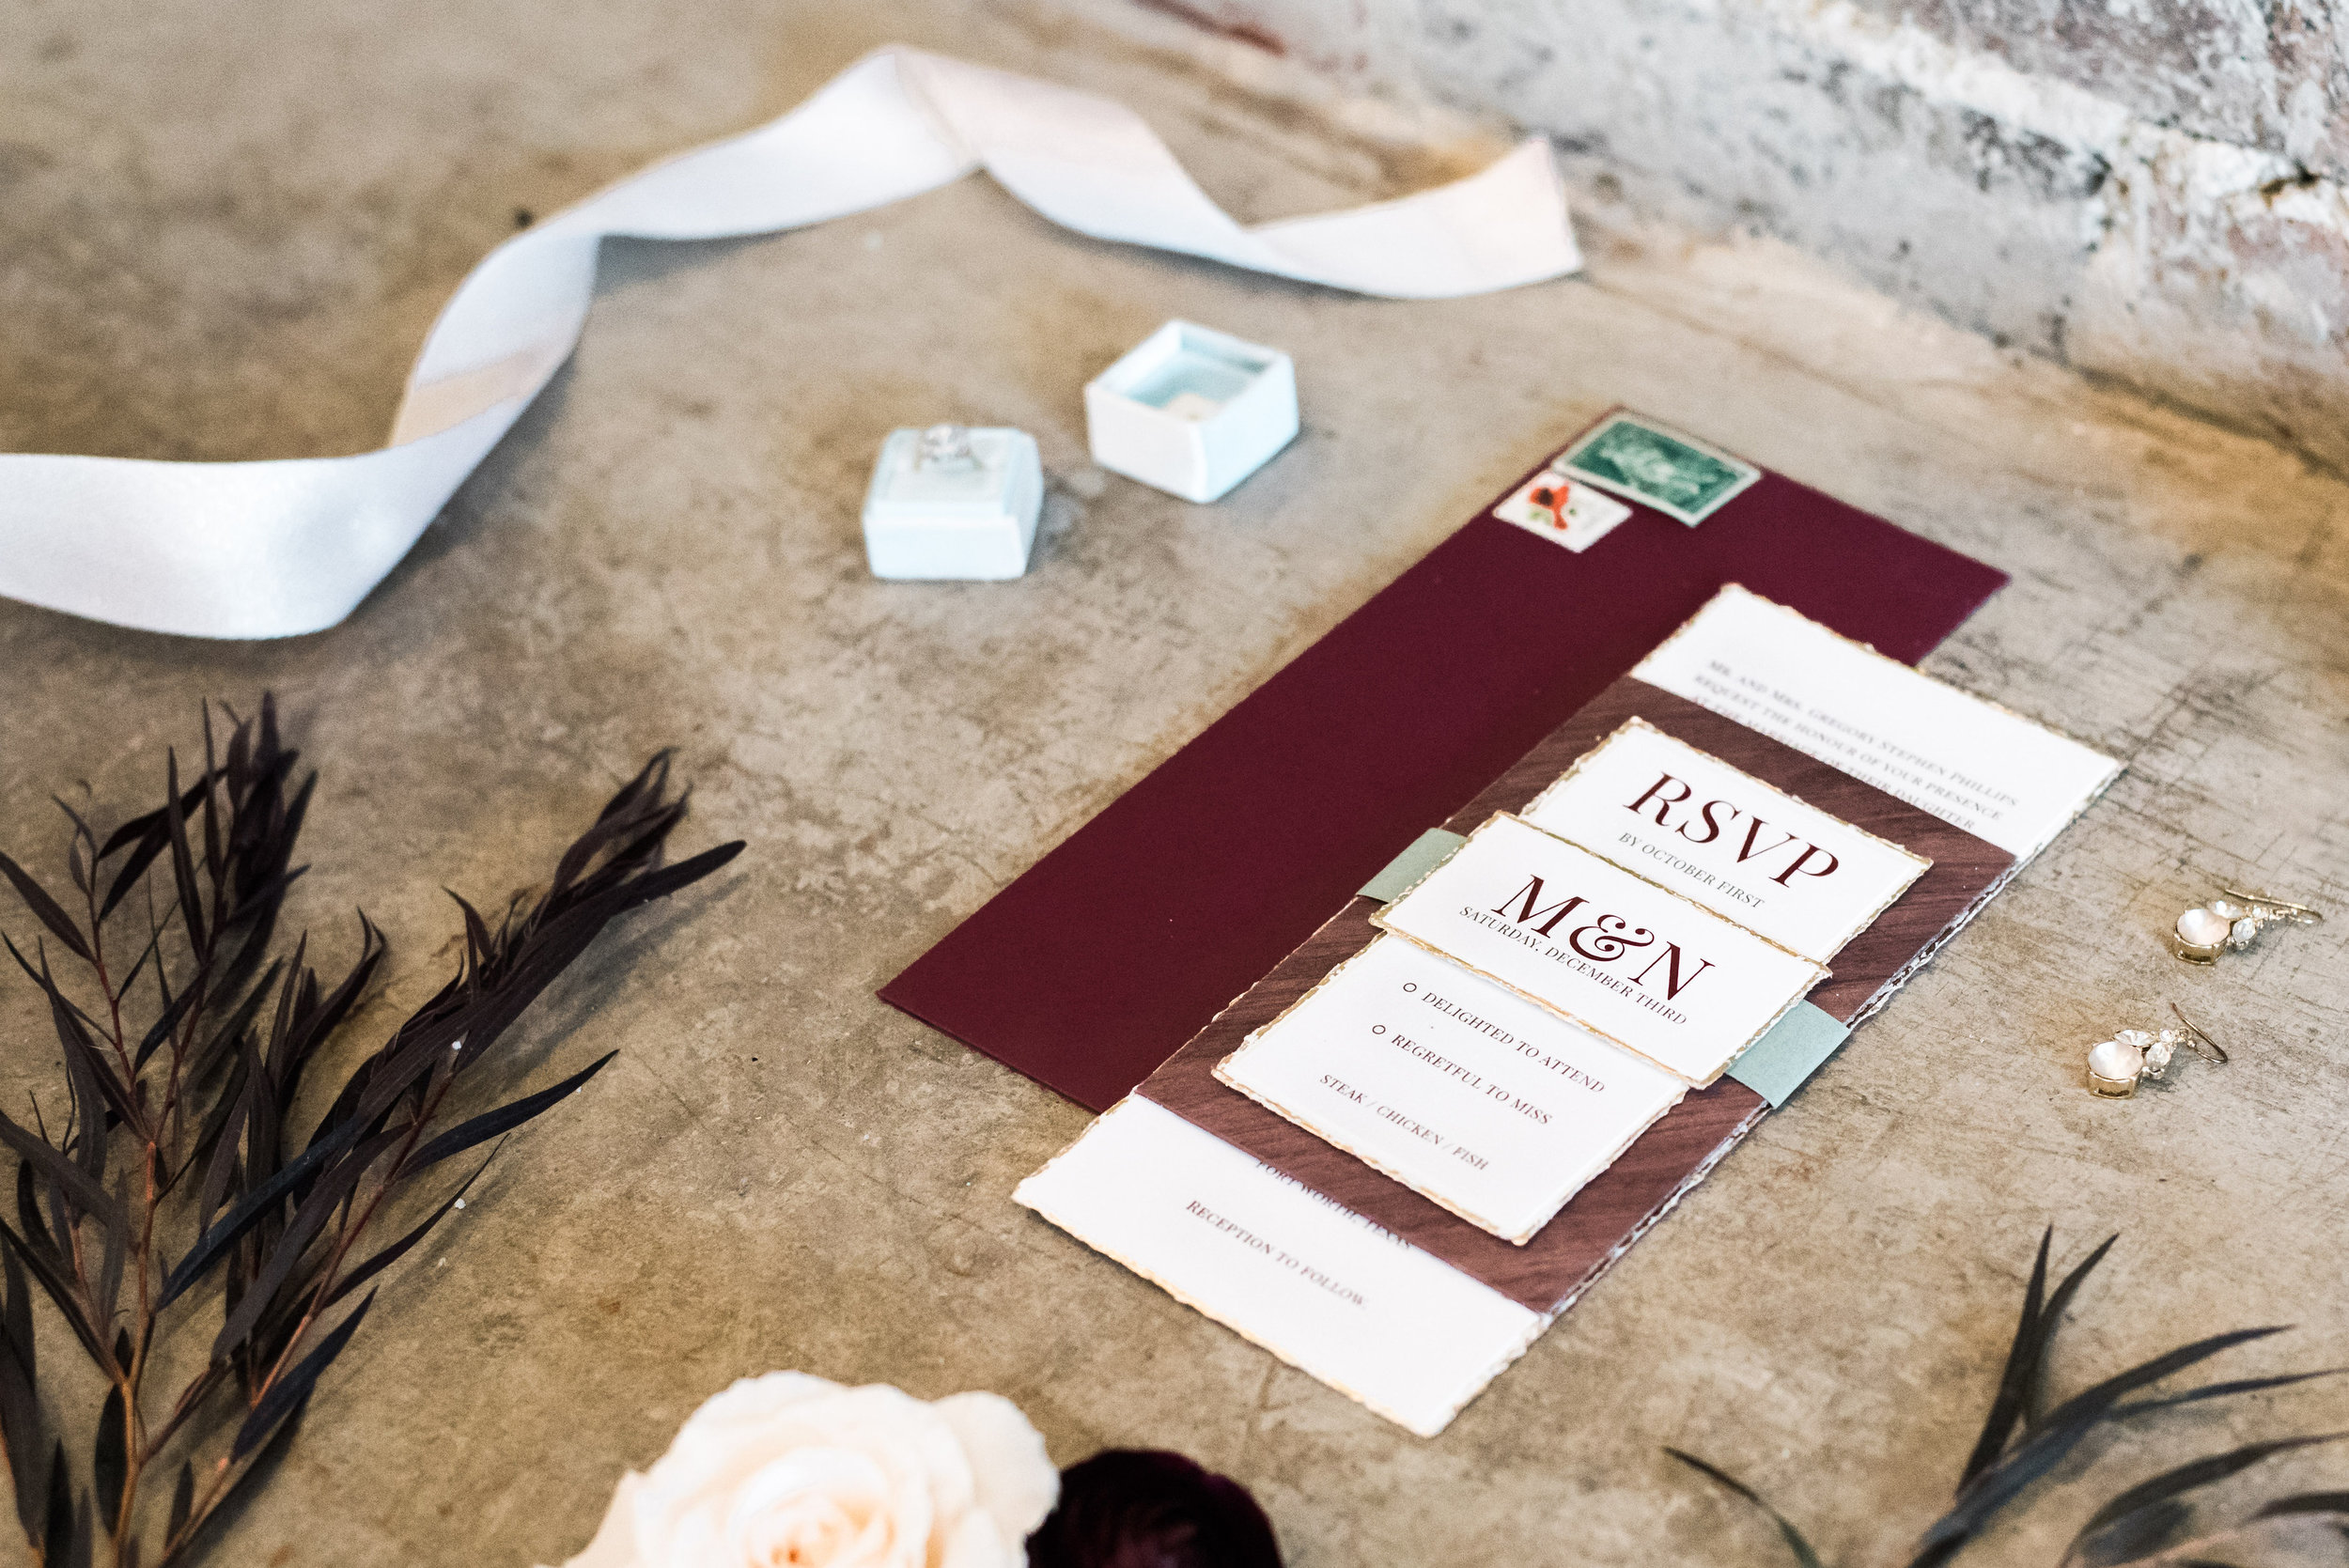 No styling board? No problem! Use. the. floor. if you have to. toss some earrings, some ribbon, deconstruct some florals and have fun with it! when everything is pretty, you can't go wrong! Photo by: Grey door photography